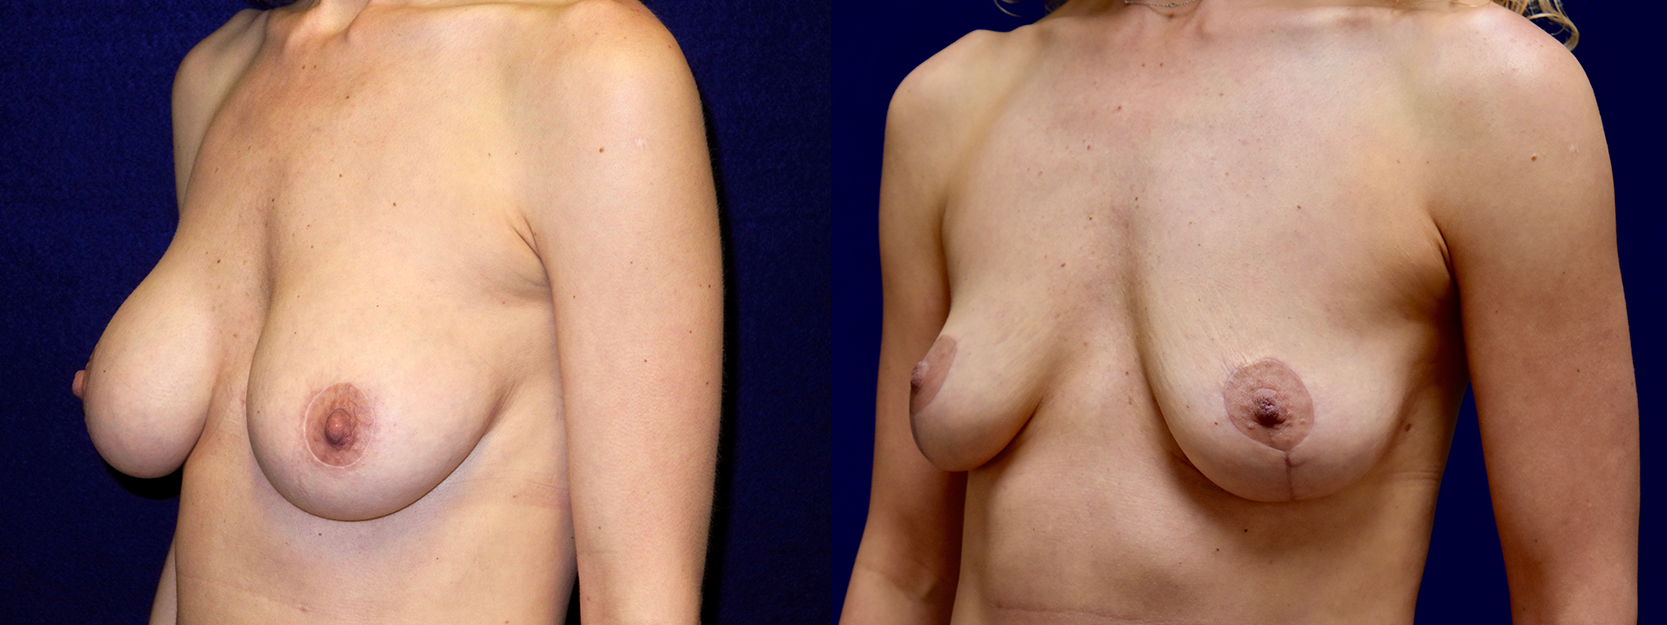 Left 3/4 View - Breast Implant Removal with Breast Lift